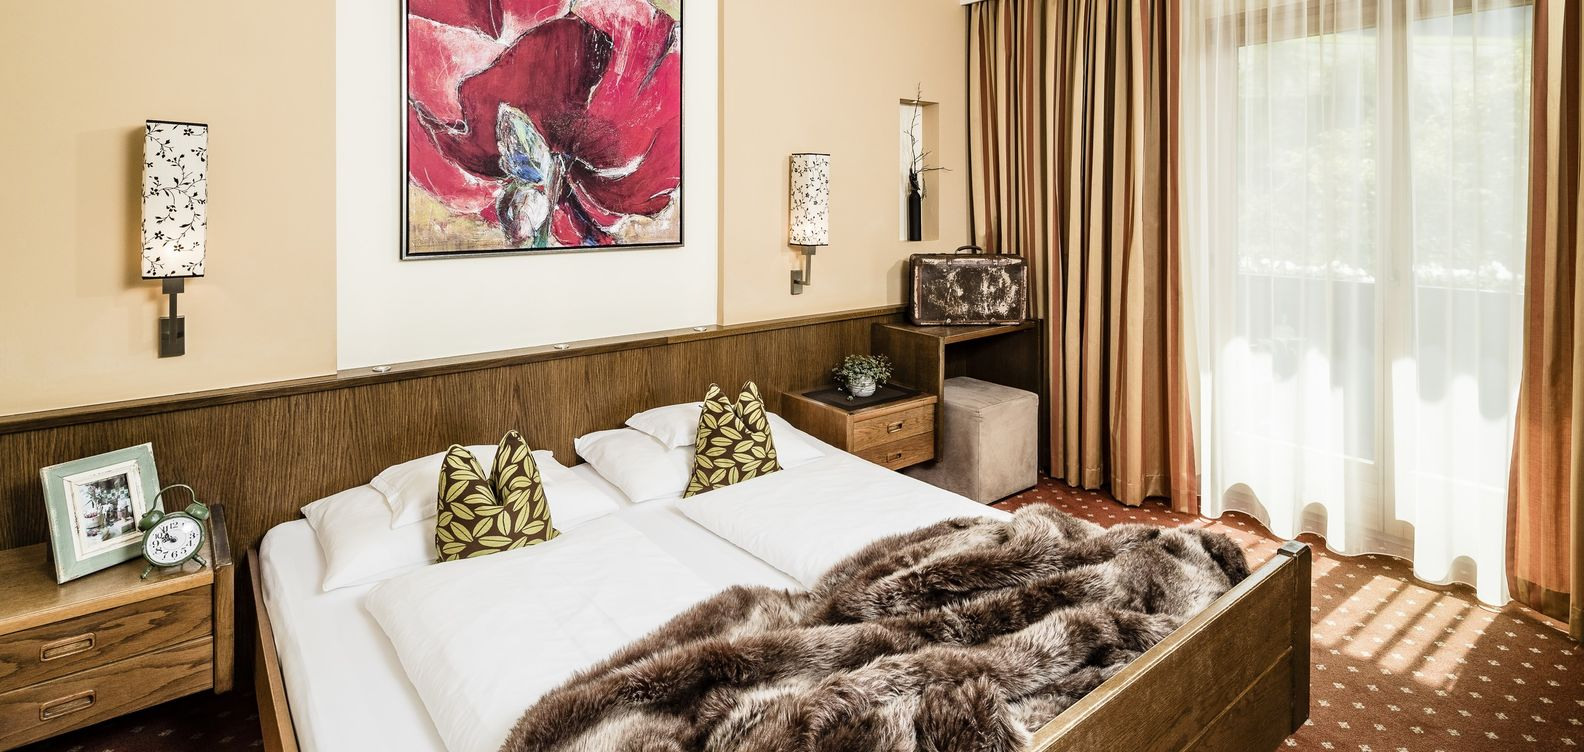 Double room harmonie at 4 star Hotel Mesnerwirt